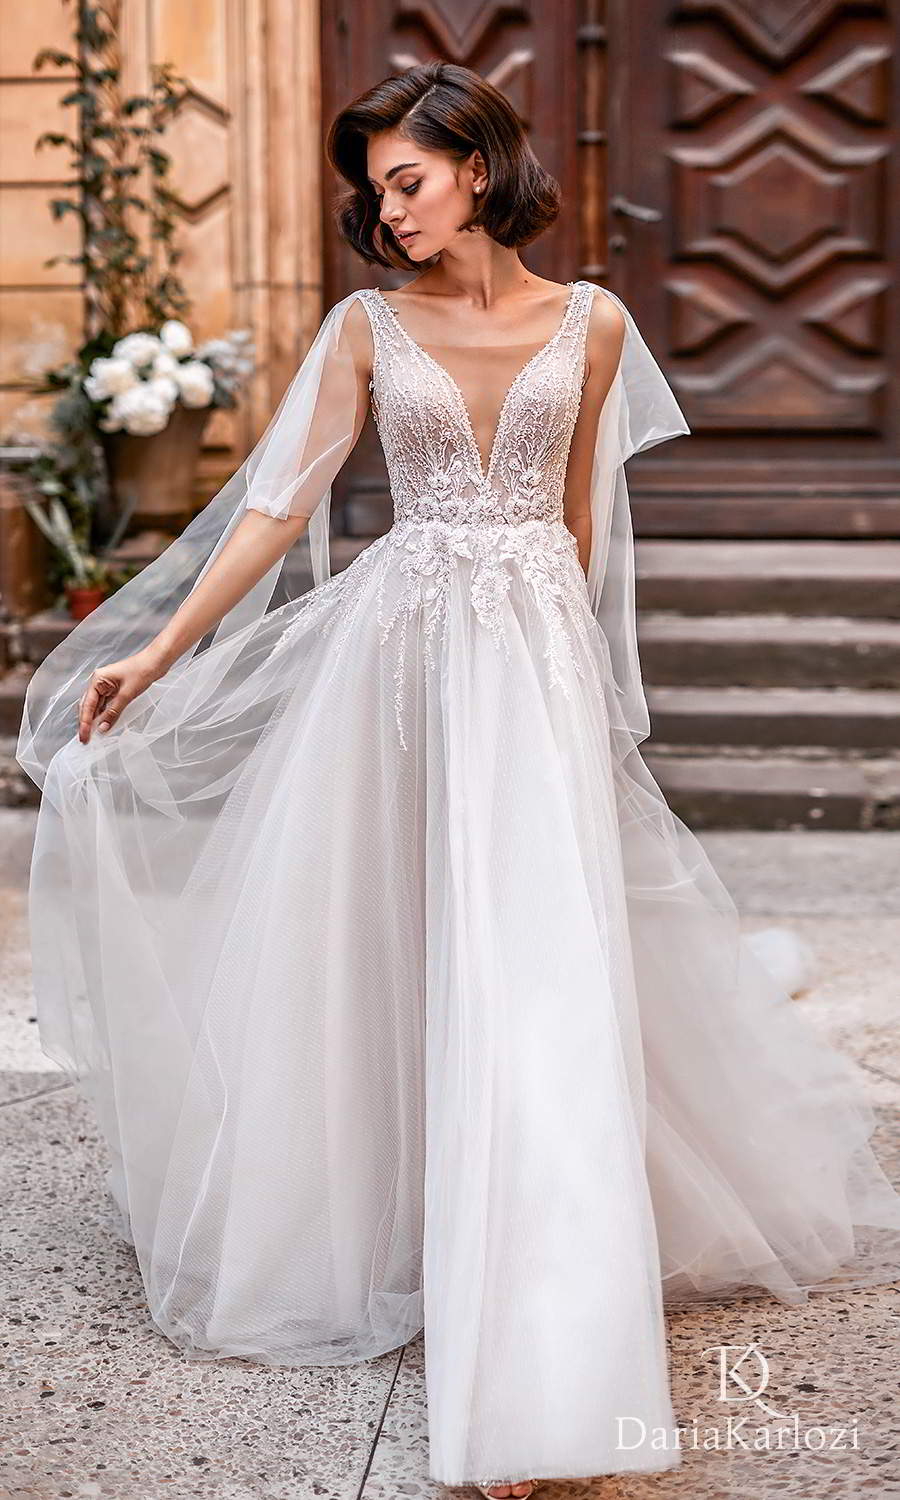 daria karlozi 2021 graceful dream bridal sleeveless straps plunging v neckline heavily embellished bodice a line ball gown wedding dress sweep train v back (euphoria) mv